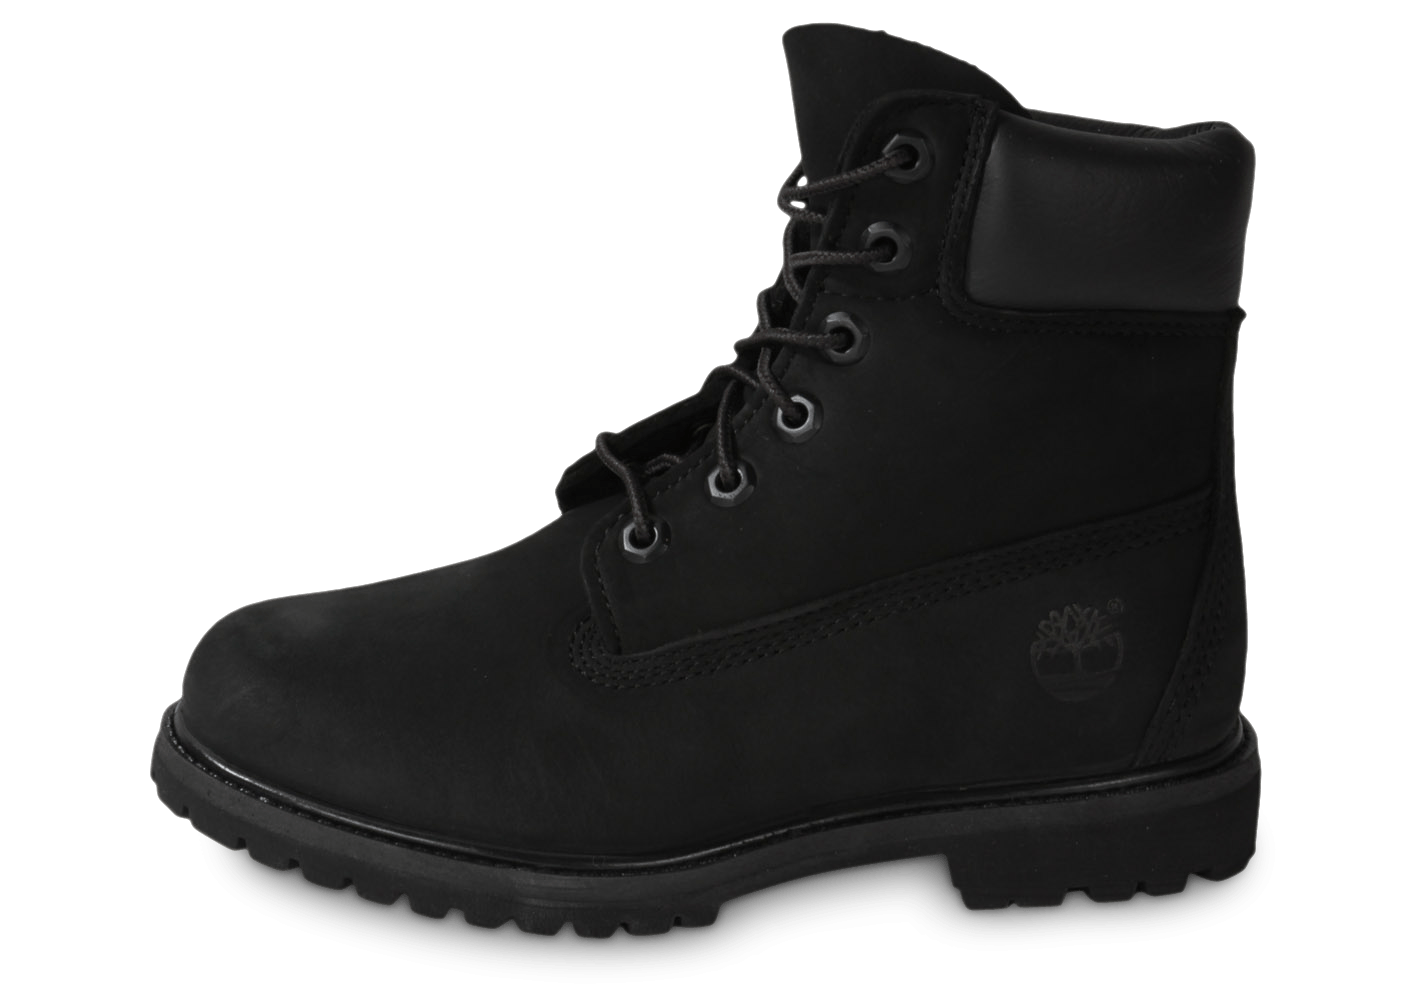 chaussures et boots timberland pour femme - chausport